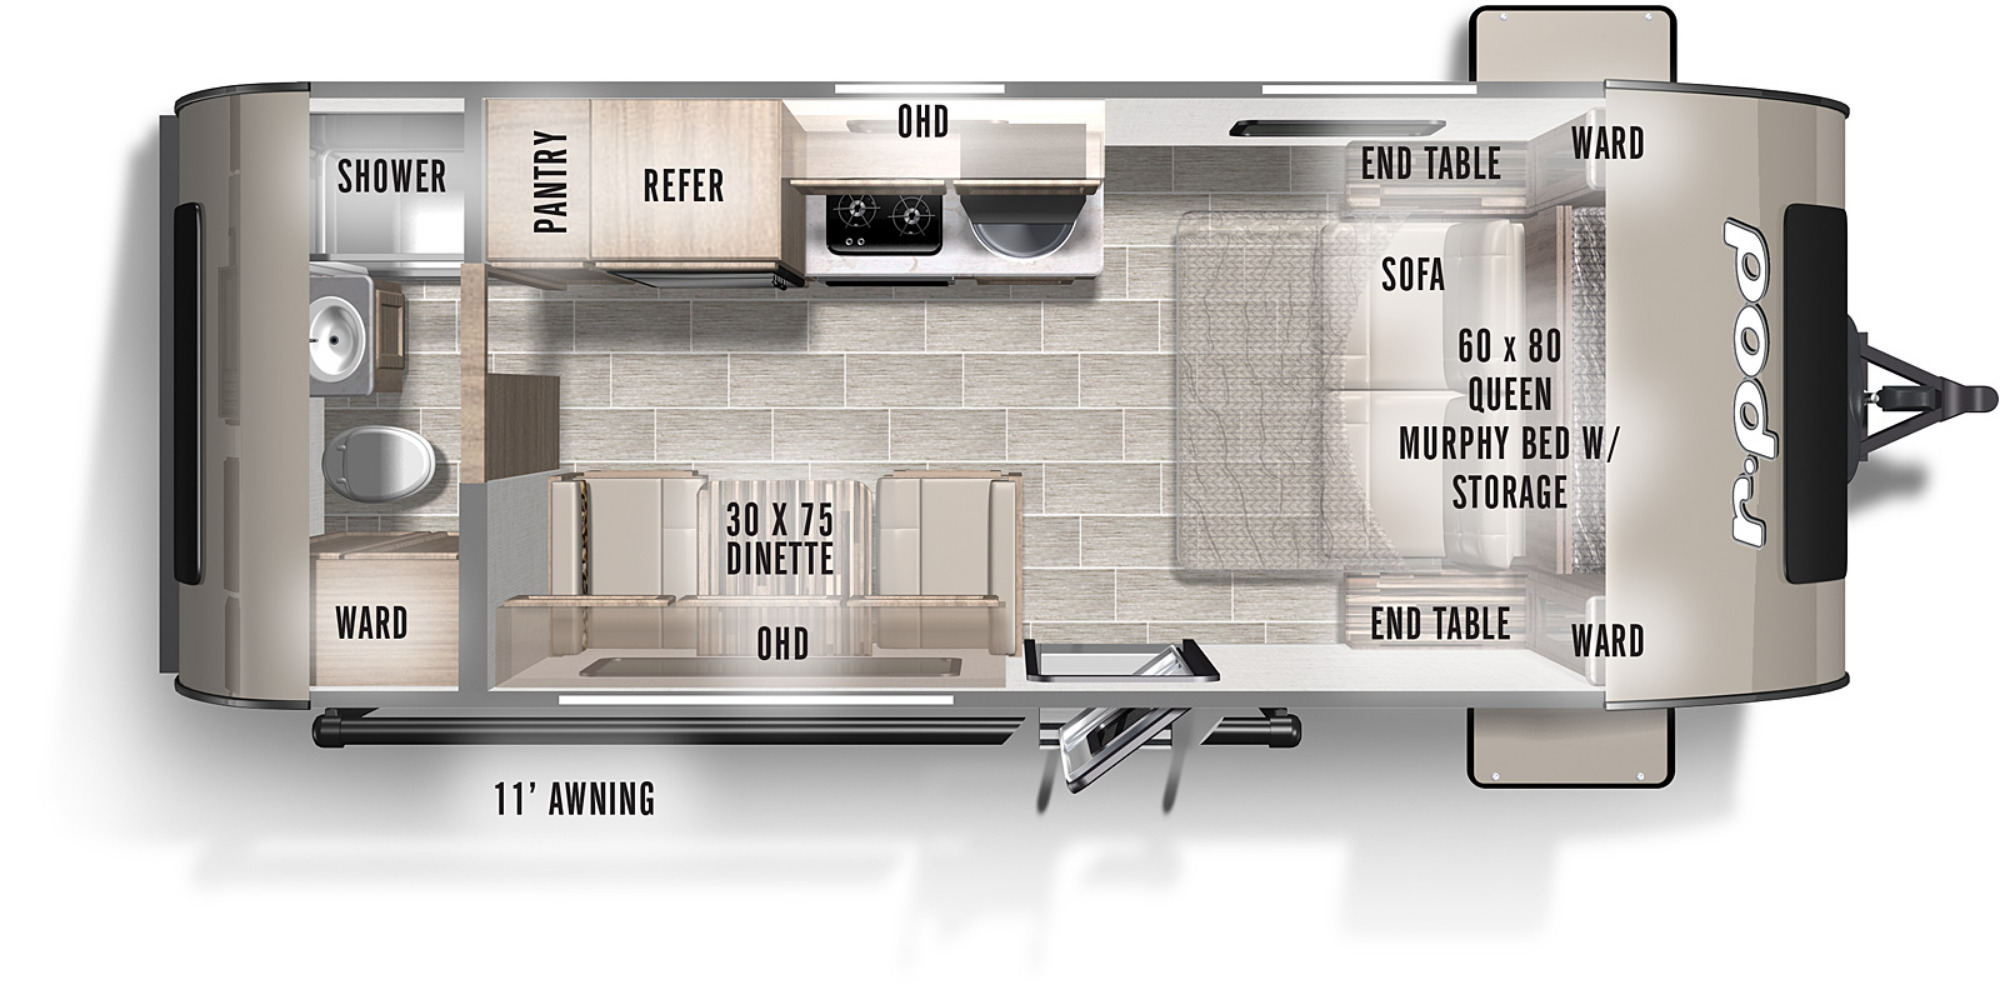 View Floor Plan for 2021 FOREST RIVER R-POD 192